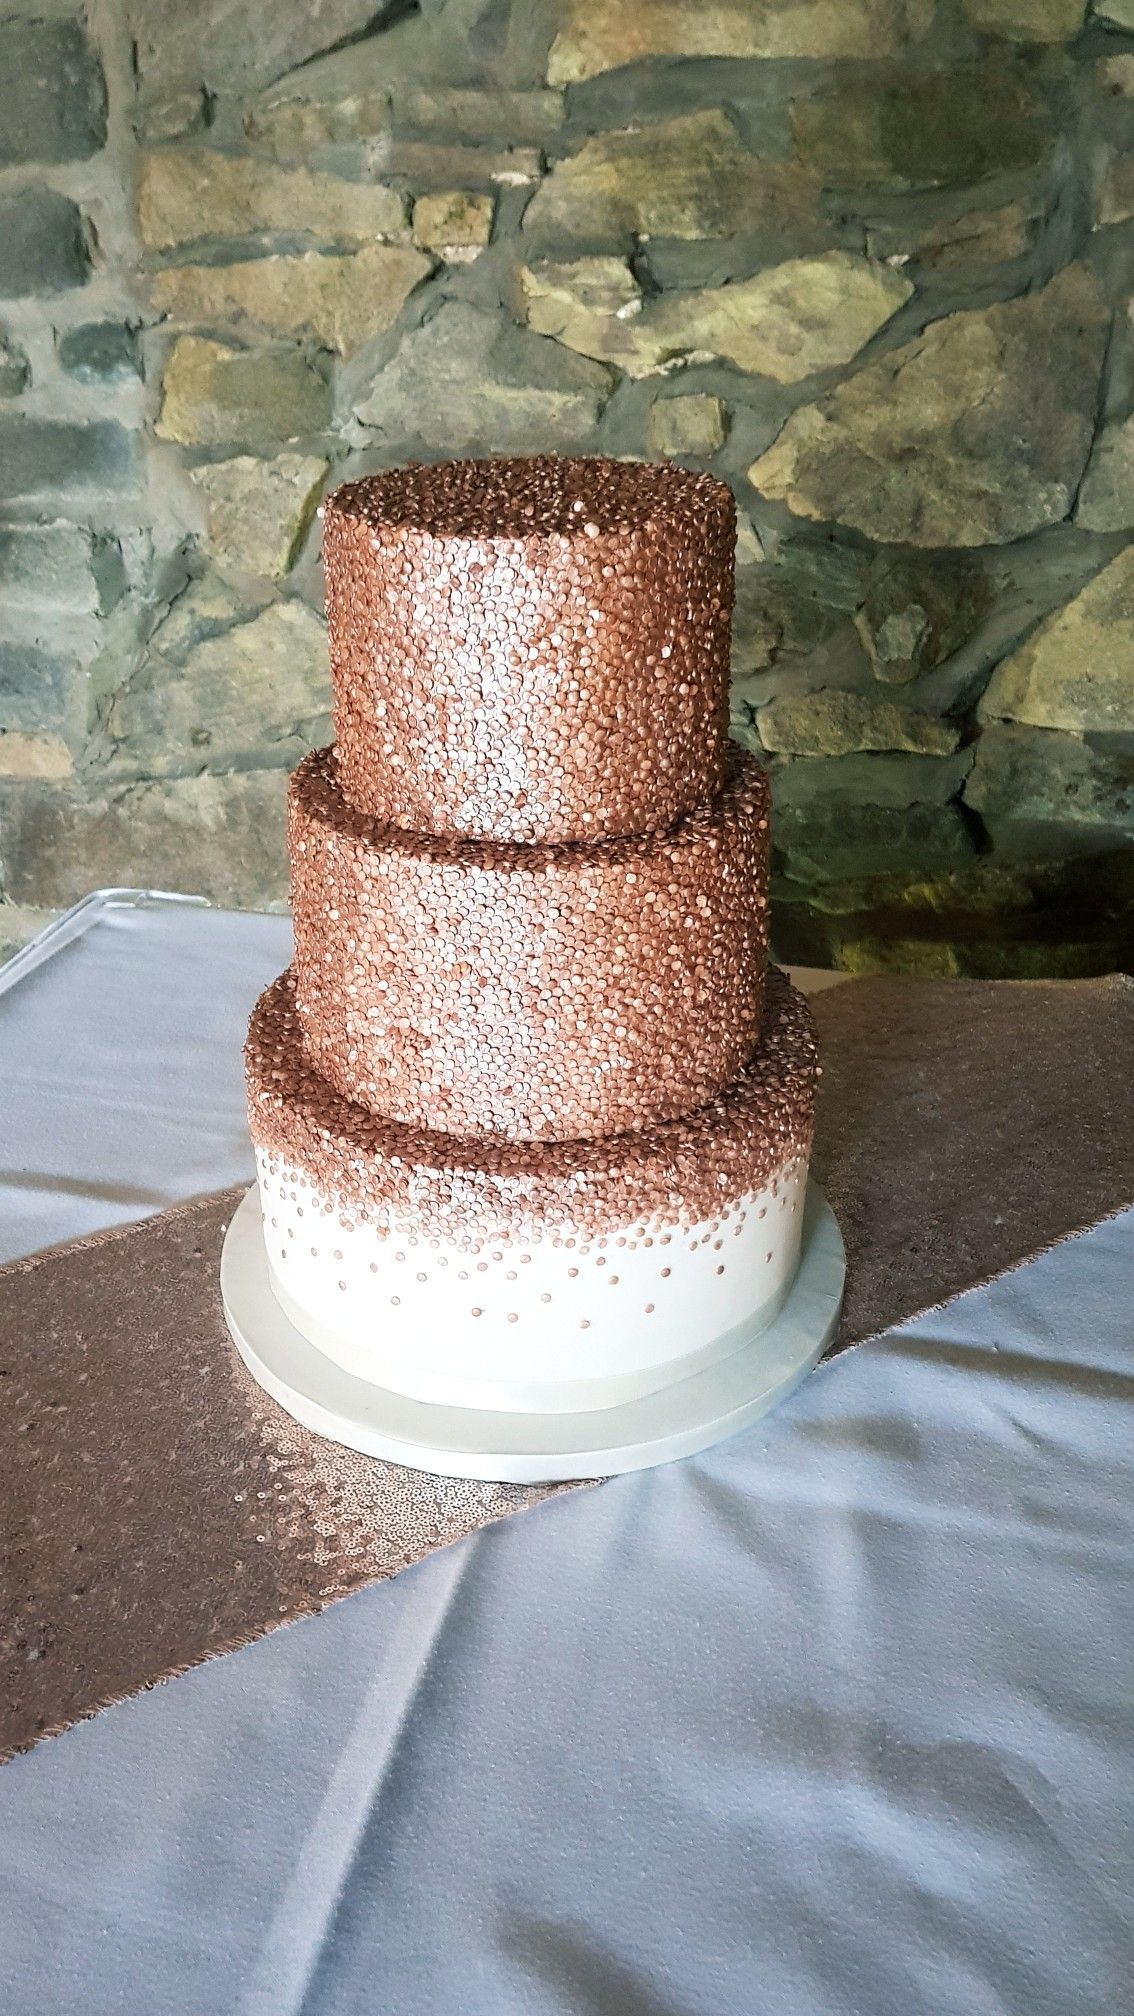 Rose gold edible sequins 3 tier wedding cake by Sugar Wishes Cakes